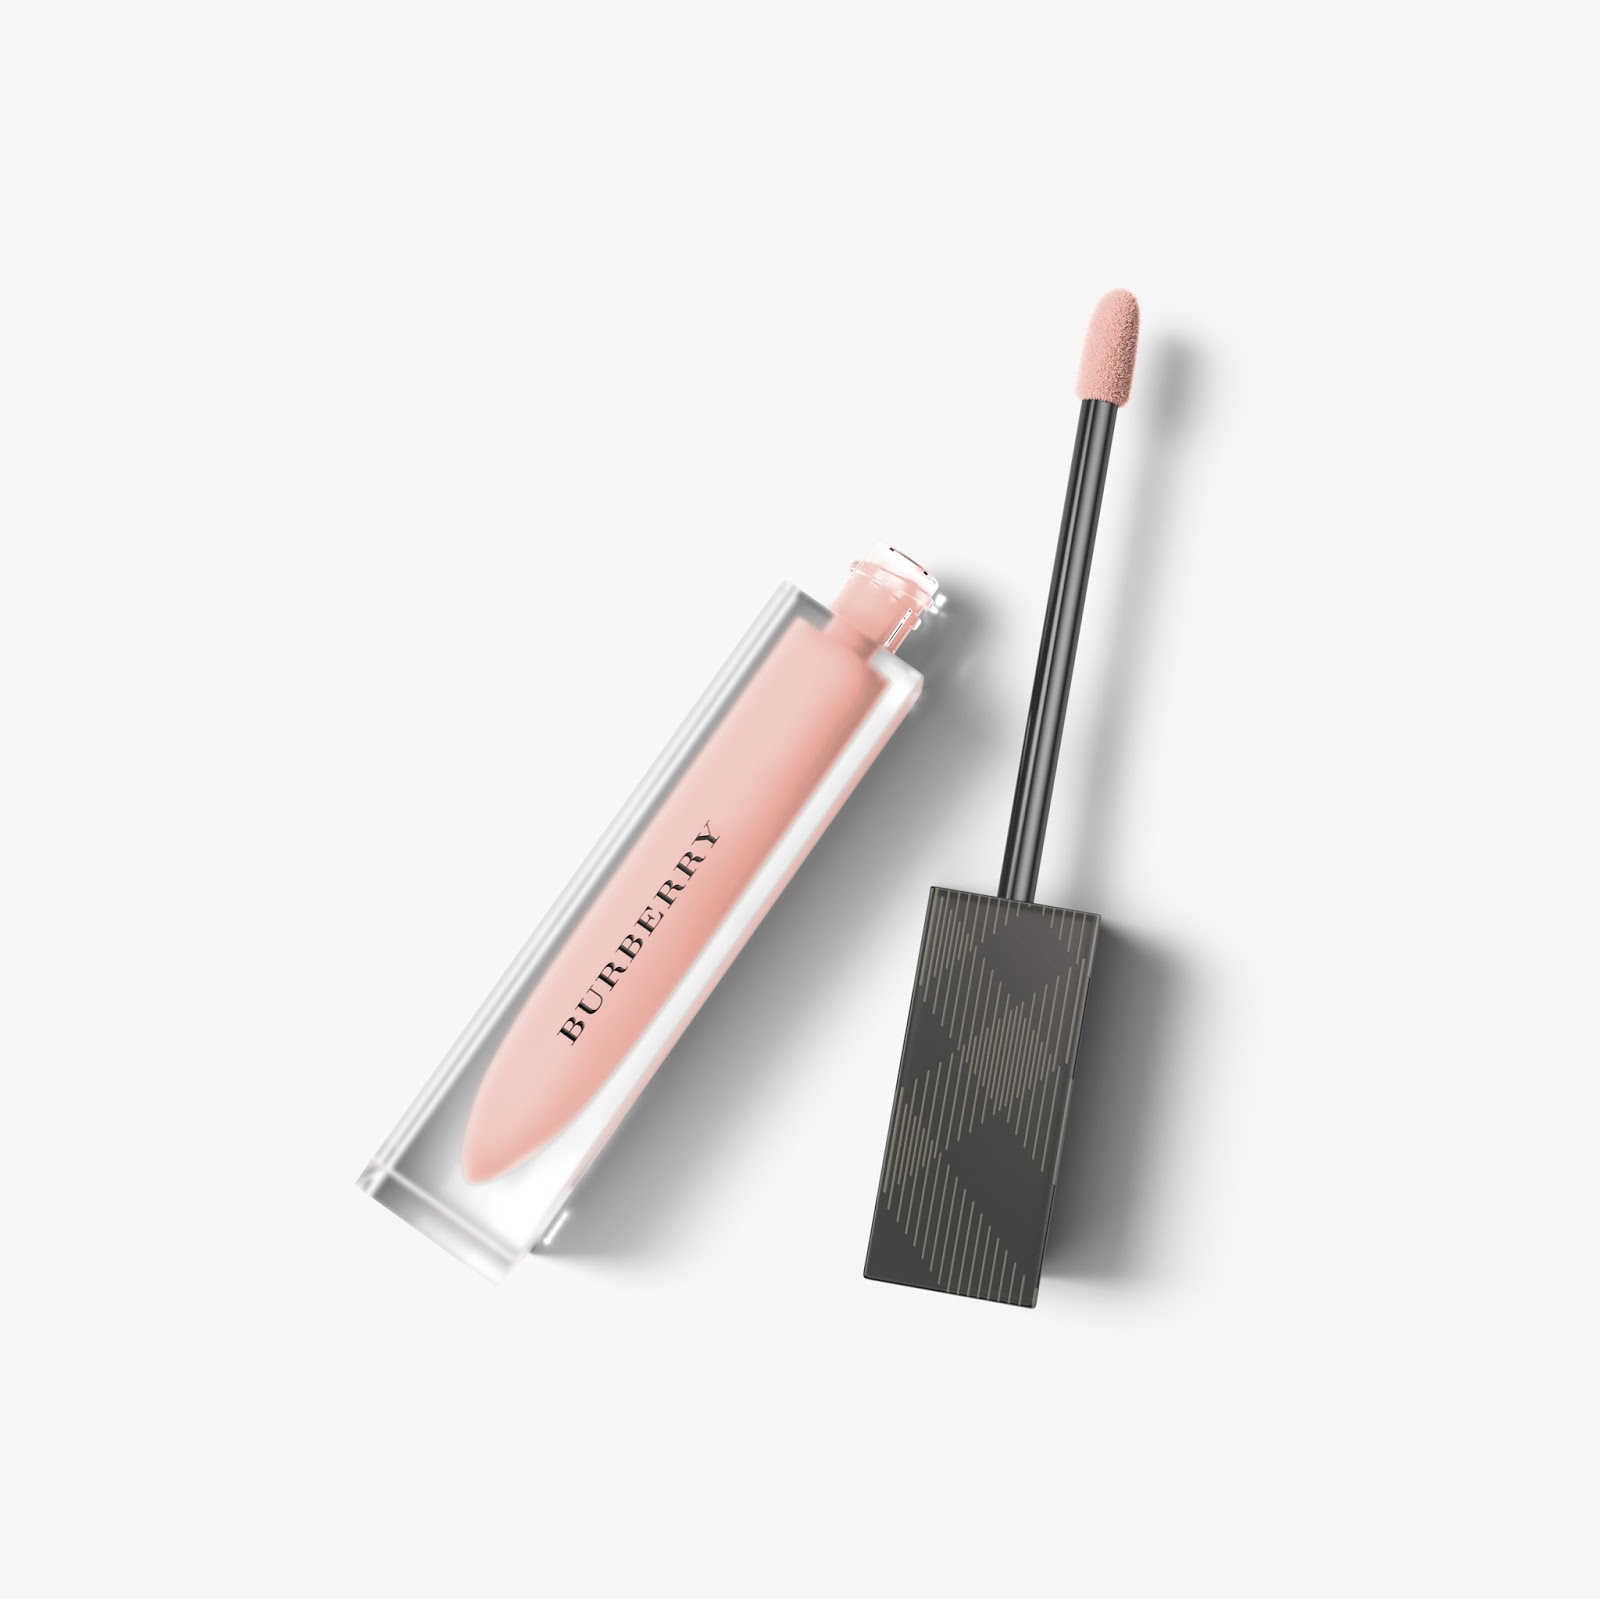 Burberry Liquid Lip Velvet iris law light nude 01